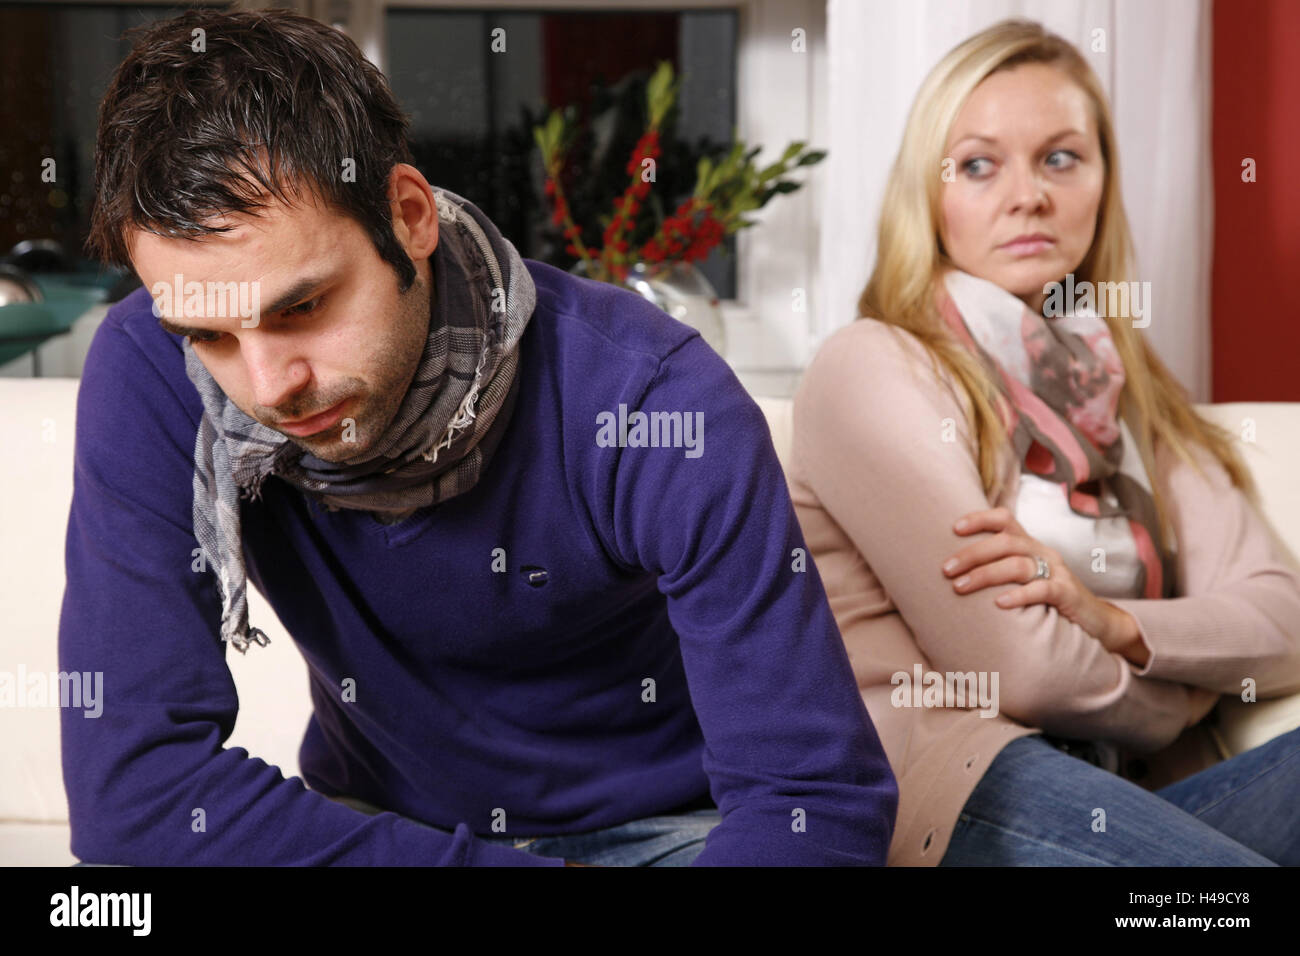 Couple, couch, sit, back in back, fight, company, discord, analysis, disappointment, criticism, facial play, disregard, Stock Photo